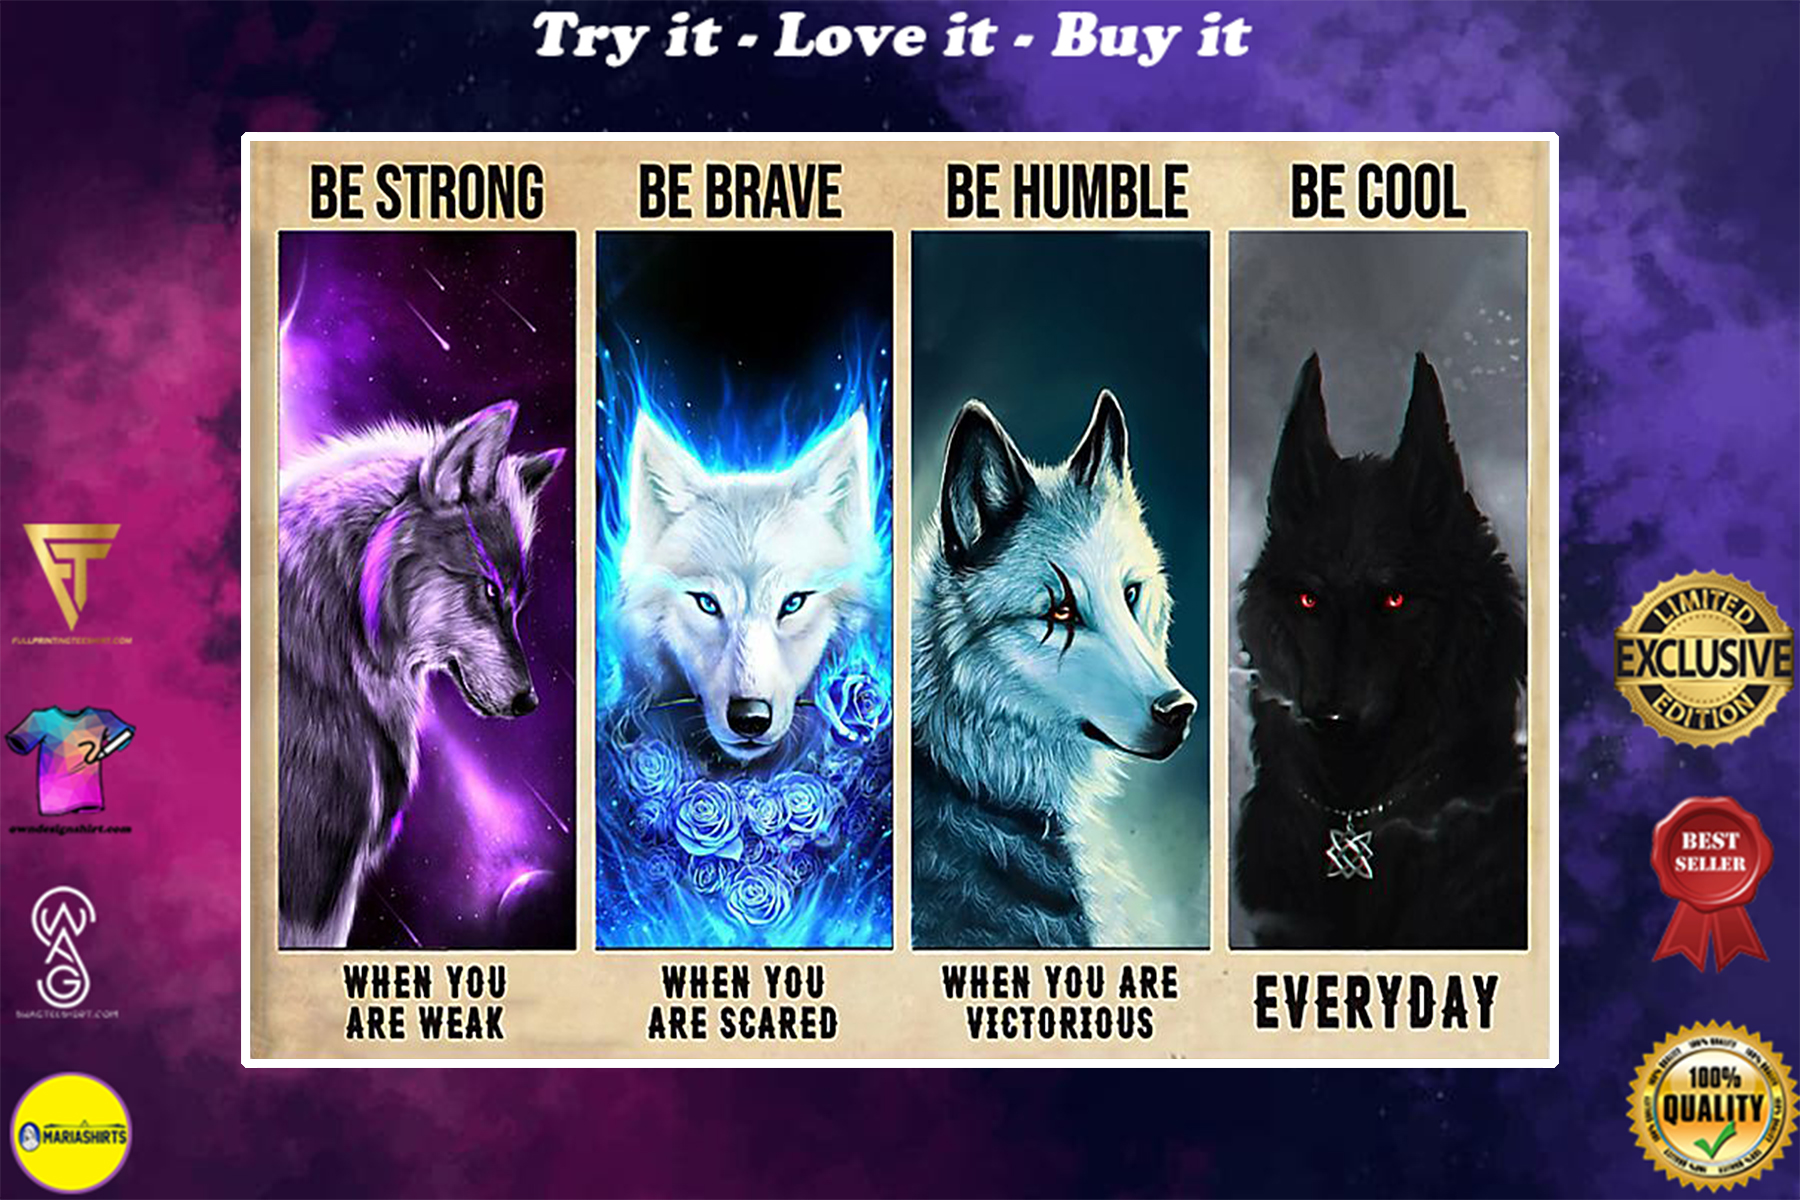 vintage wolf be strong when you are weak be brave when you are scared poster